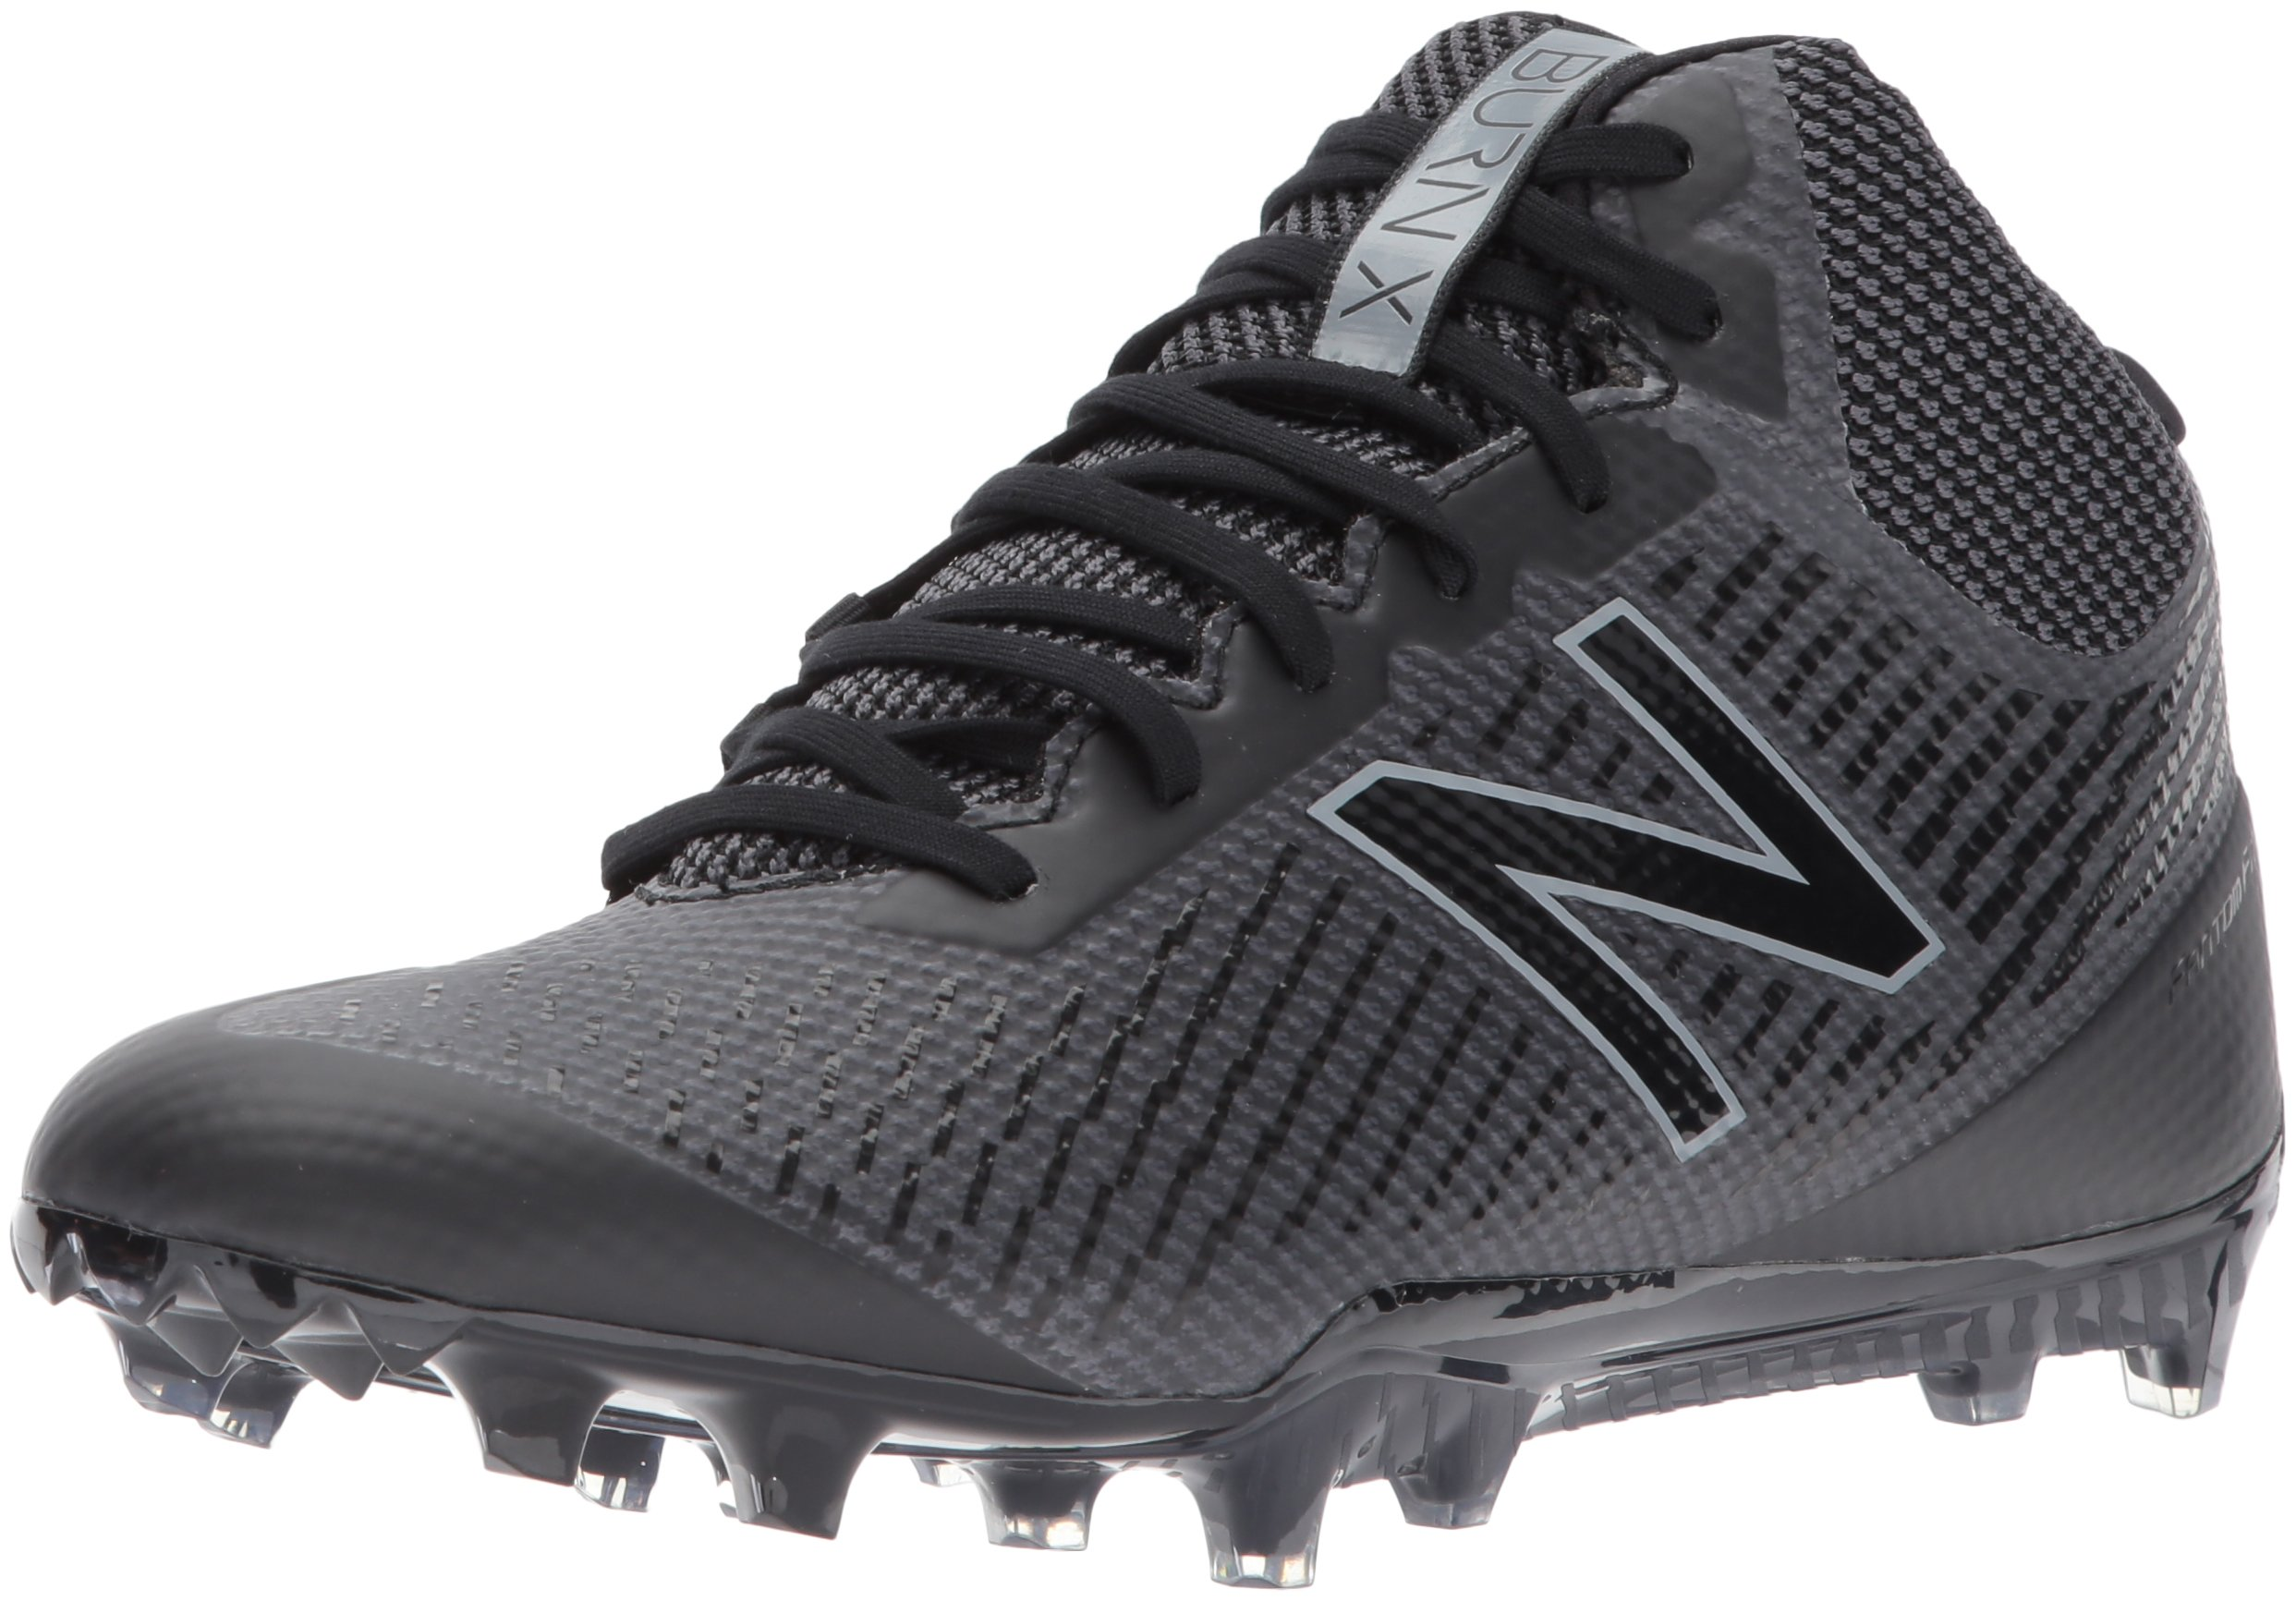 New Balance Men's BURN Mid Speed Lacrosse Shoe, Black, 7.5 D US by New Balance